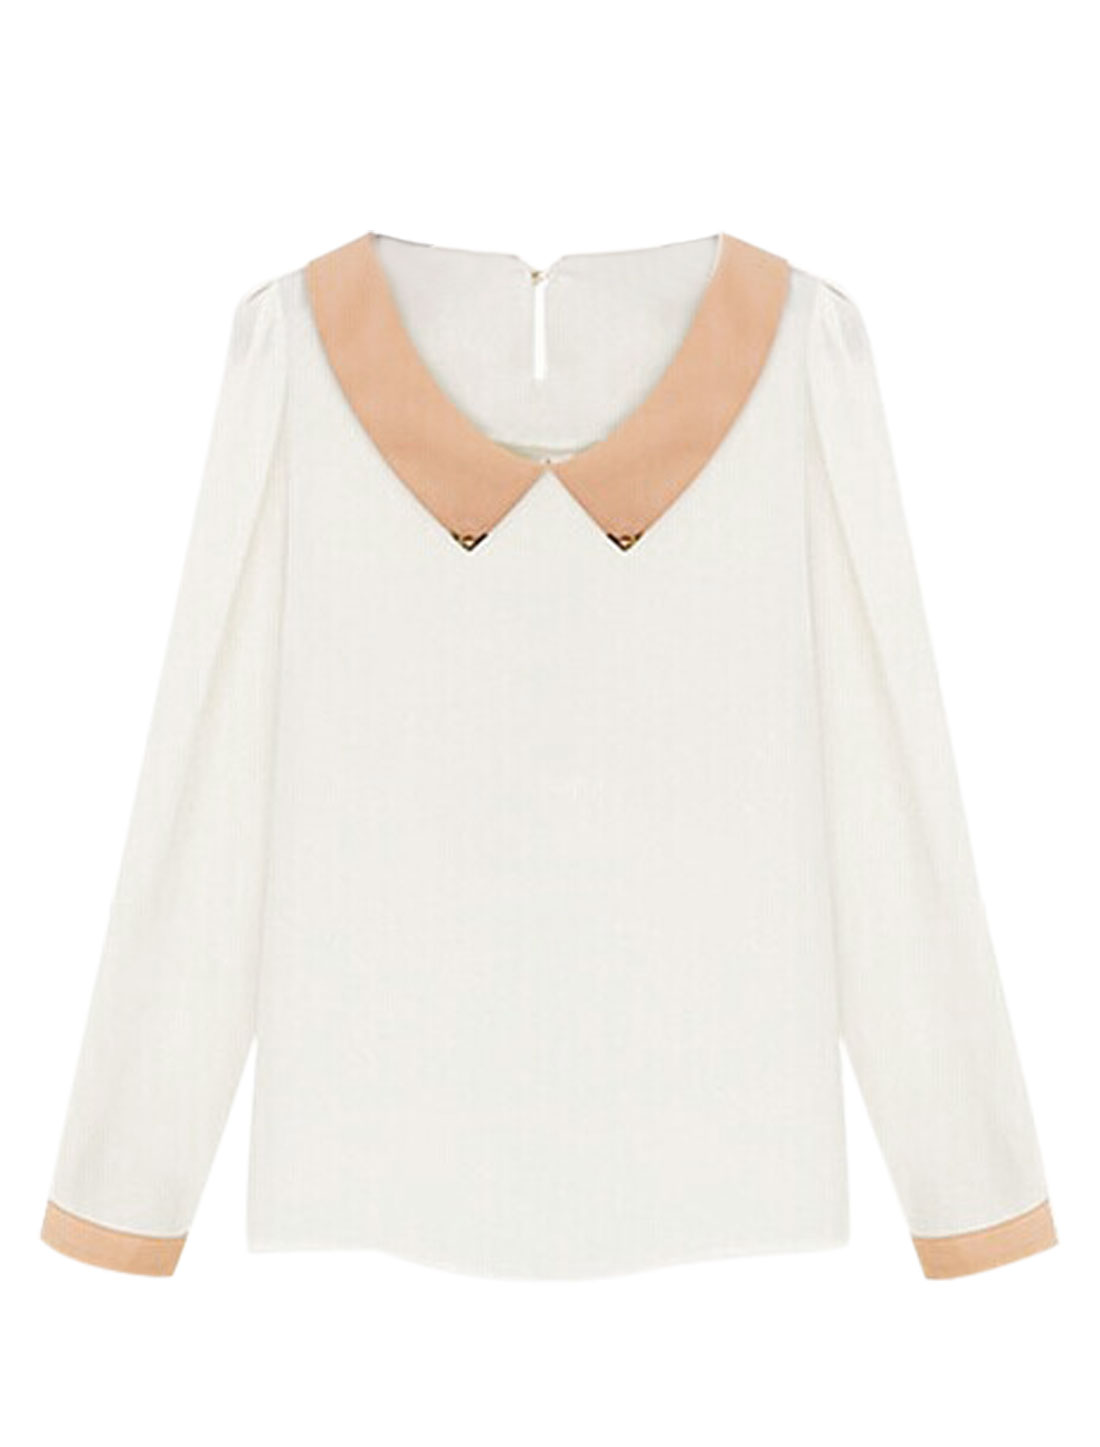 Peter Pan Collar Sweet White Chiffon Shirt for Lady M